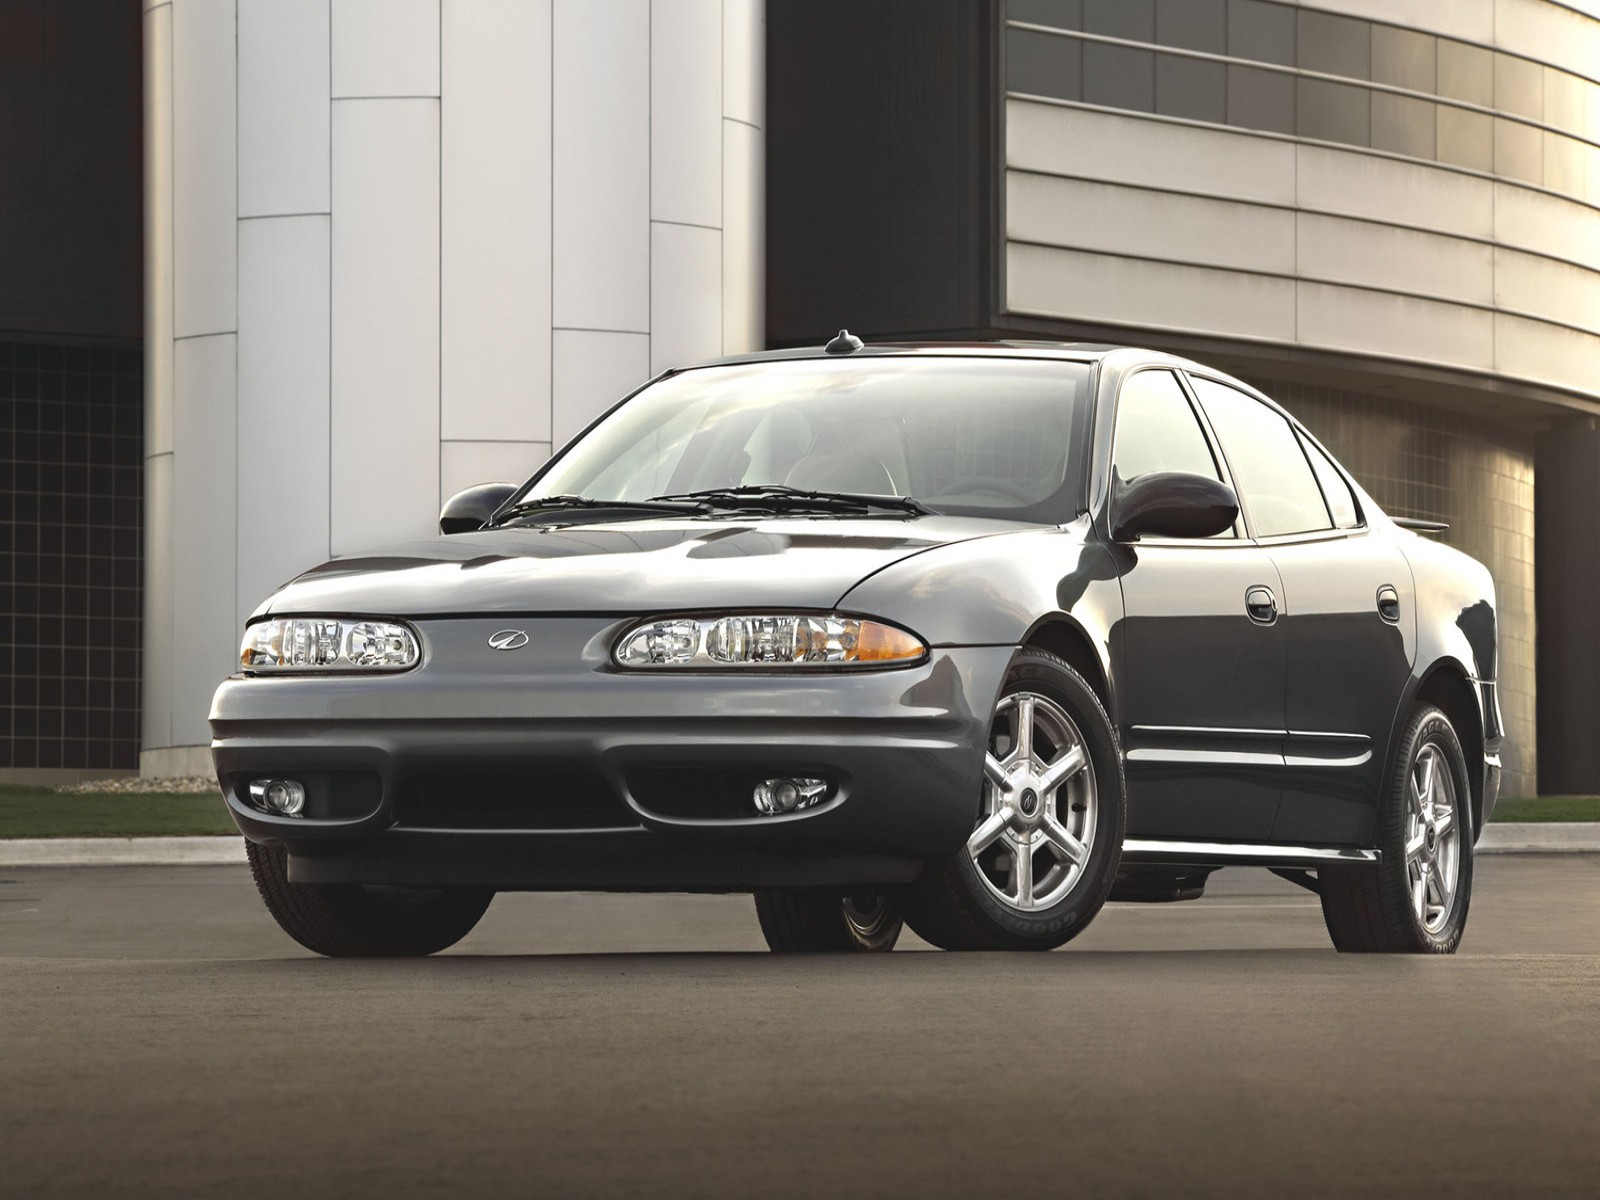 Oldsmobile Alero Related Images Start 0 Weili Automotive